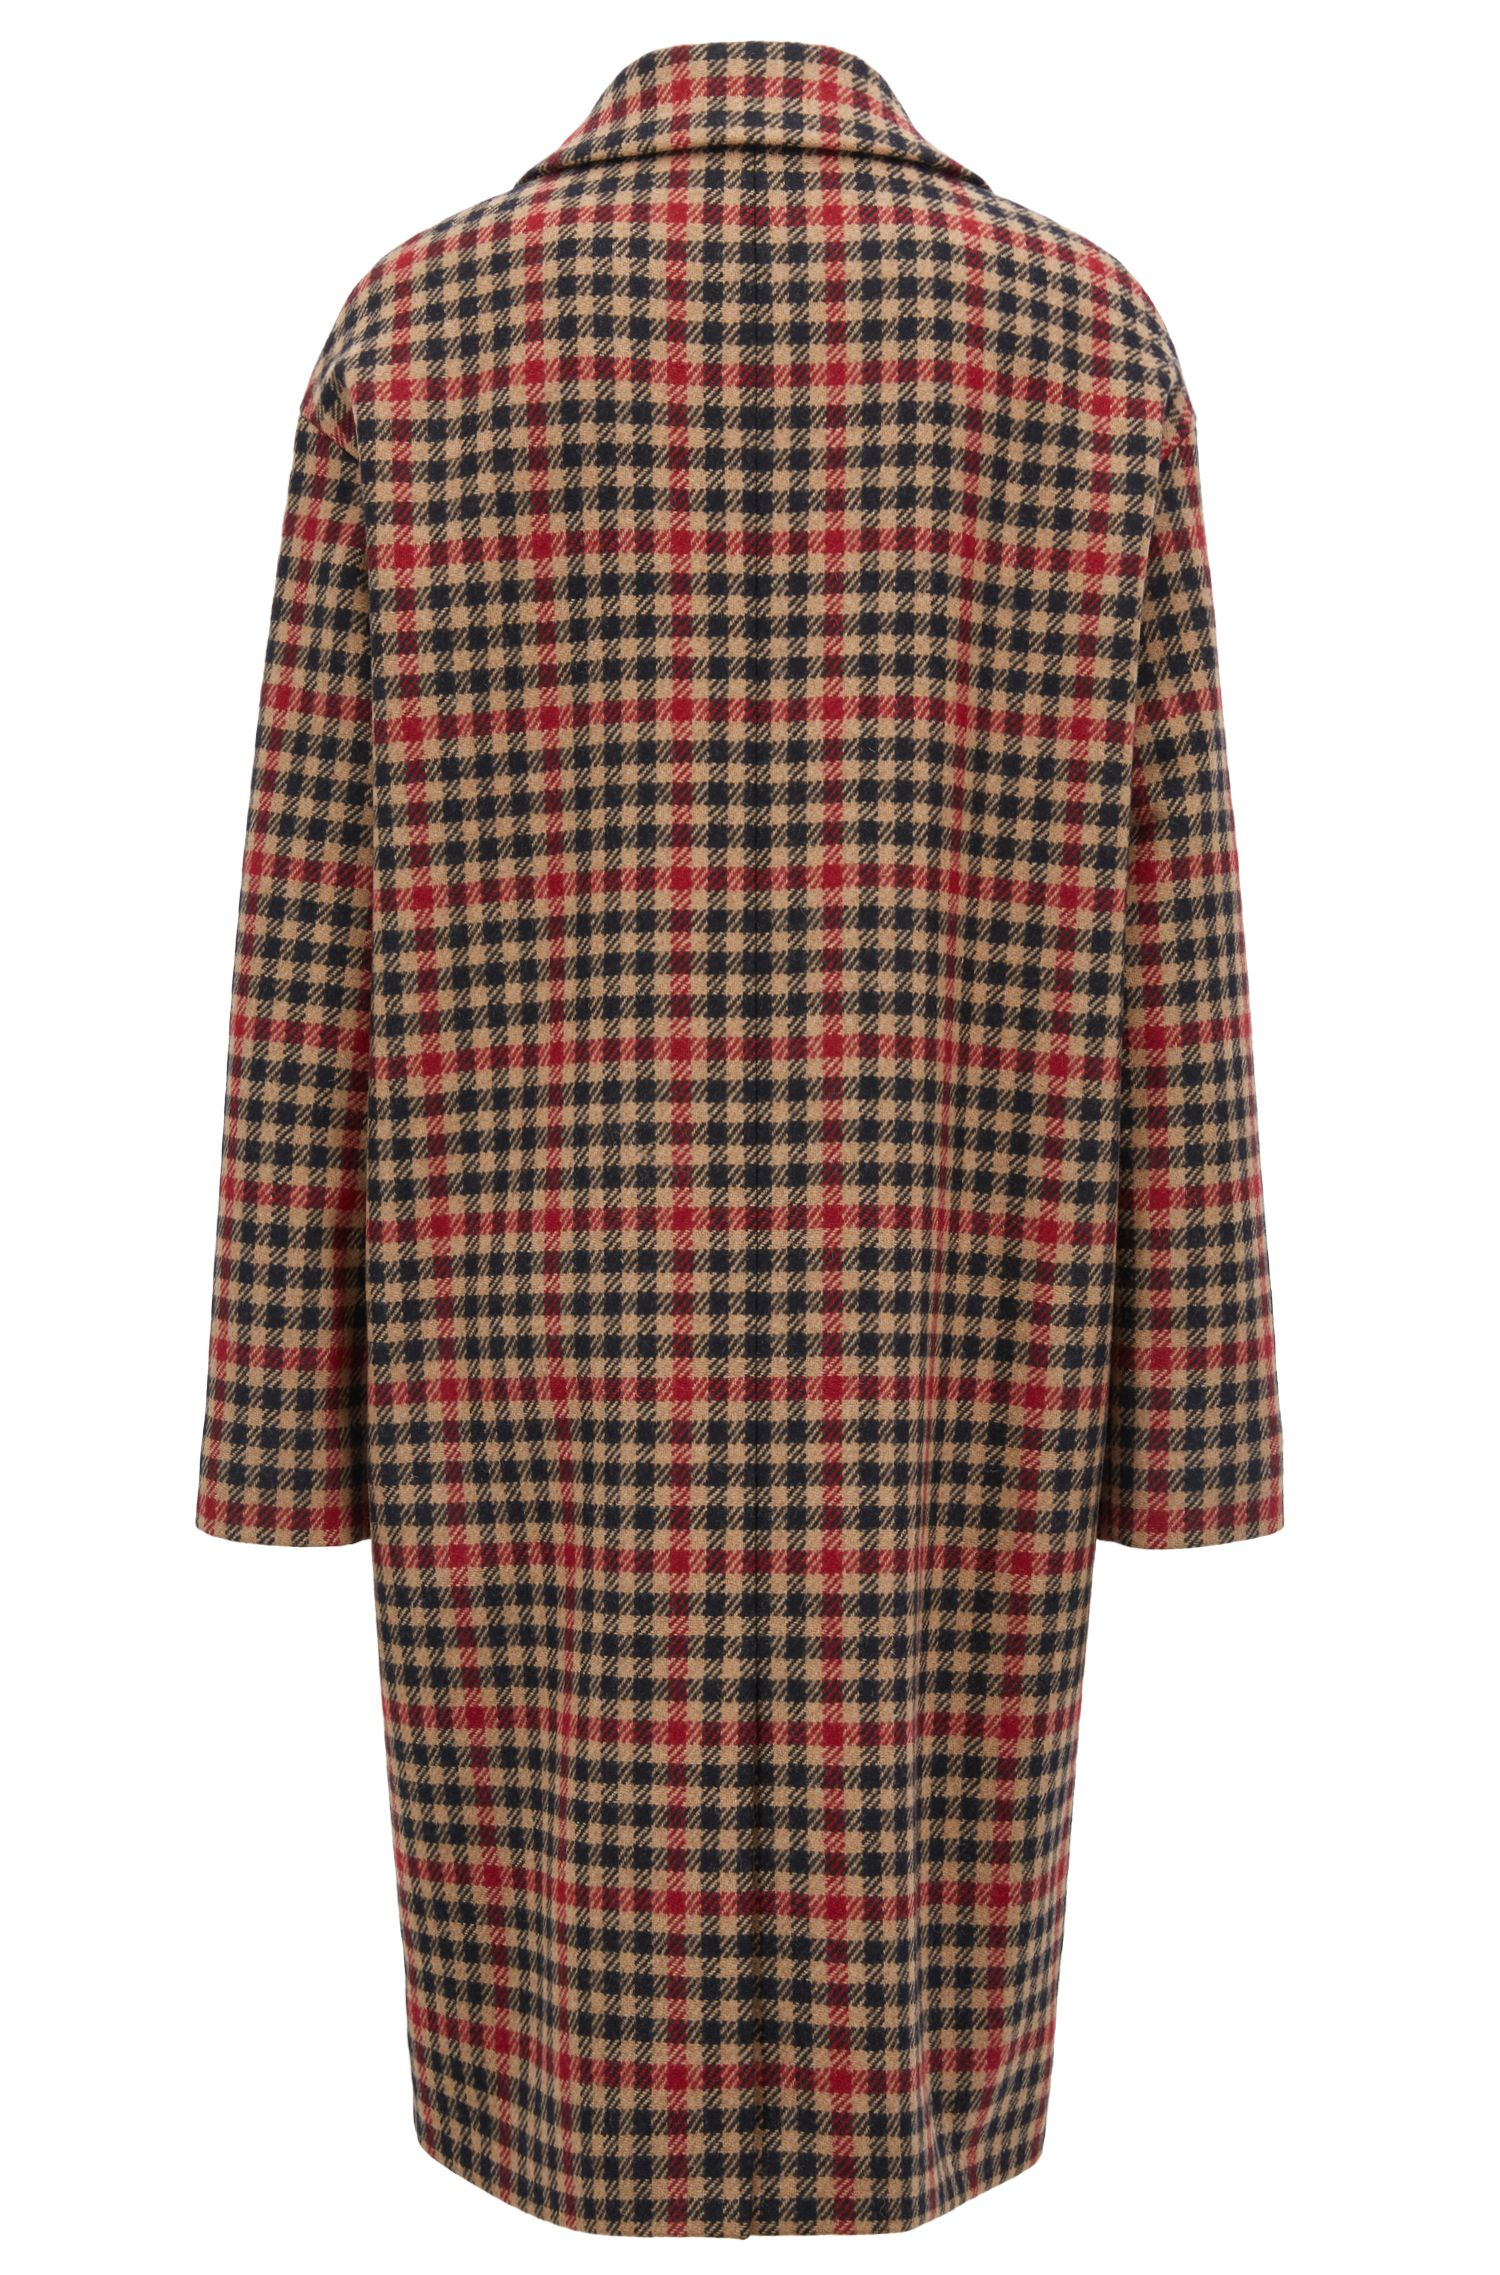 Oversized-fit wool-blend coat in houndstooth jacquard, Patterned